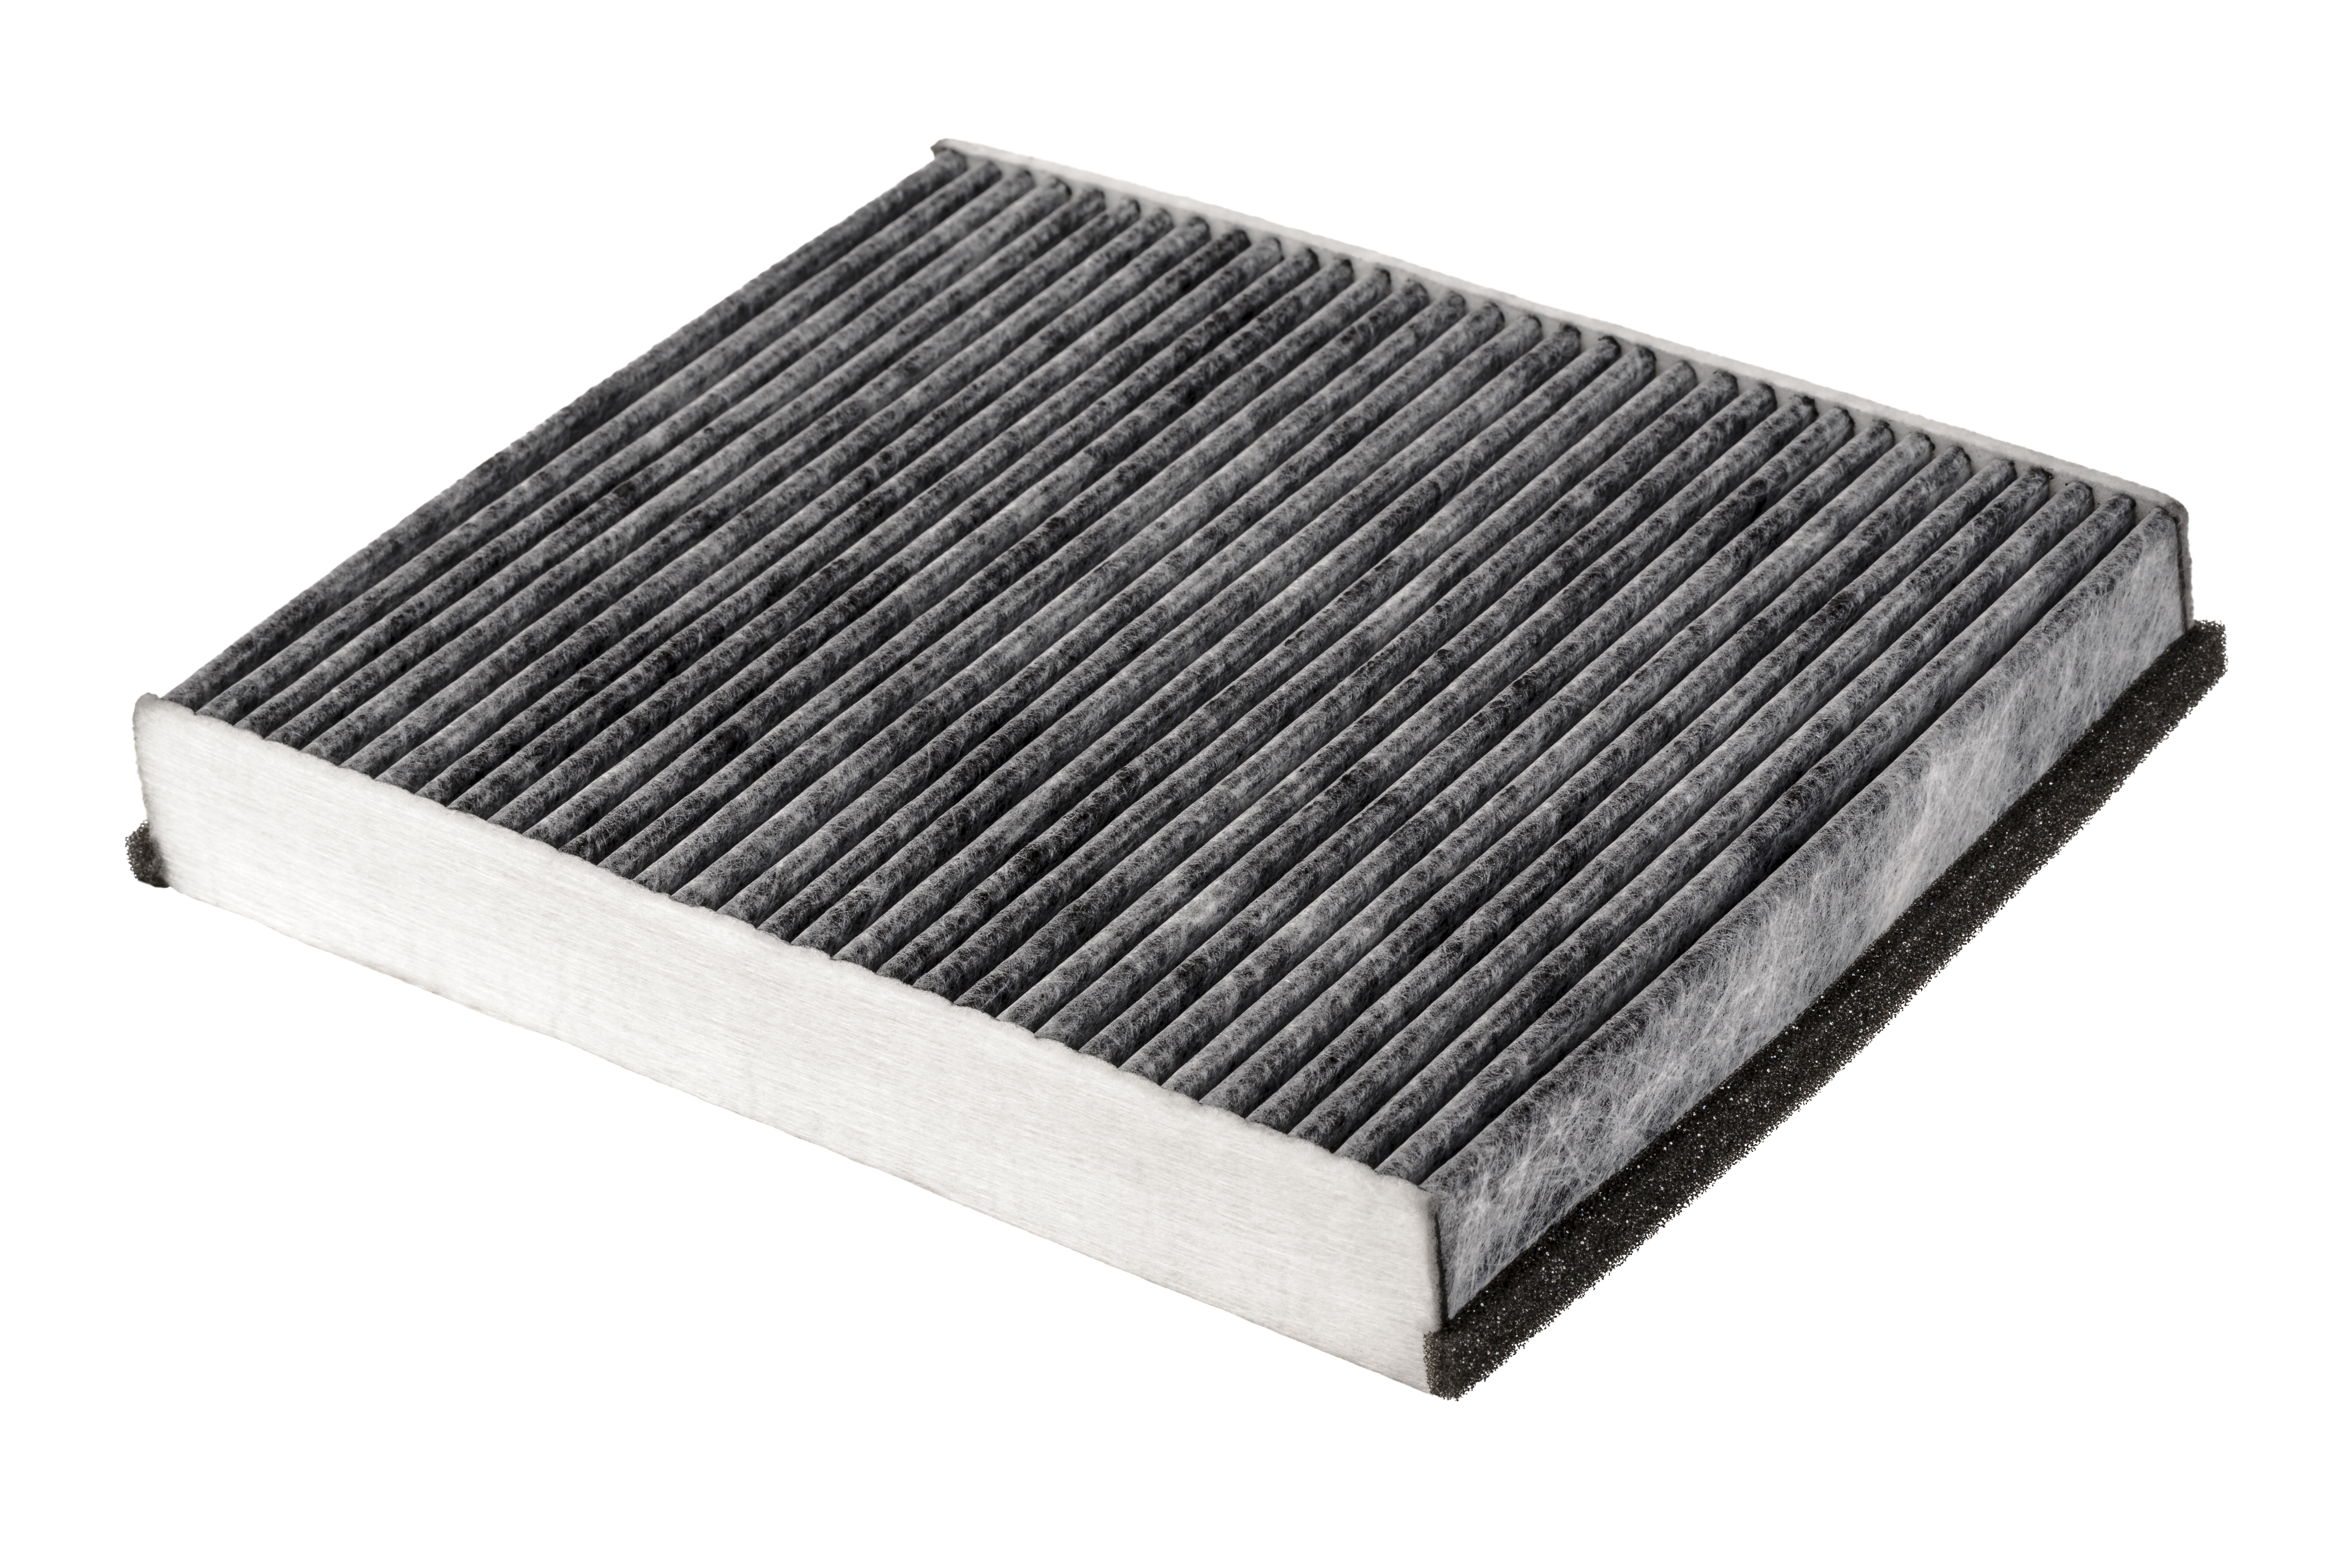 cond prius cabins air b oem cabin toyota malaysia c carbon filter productdetail